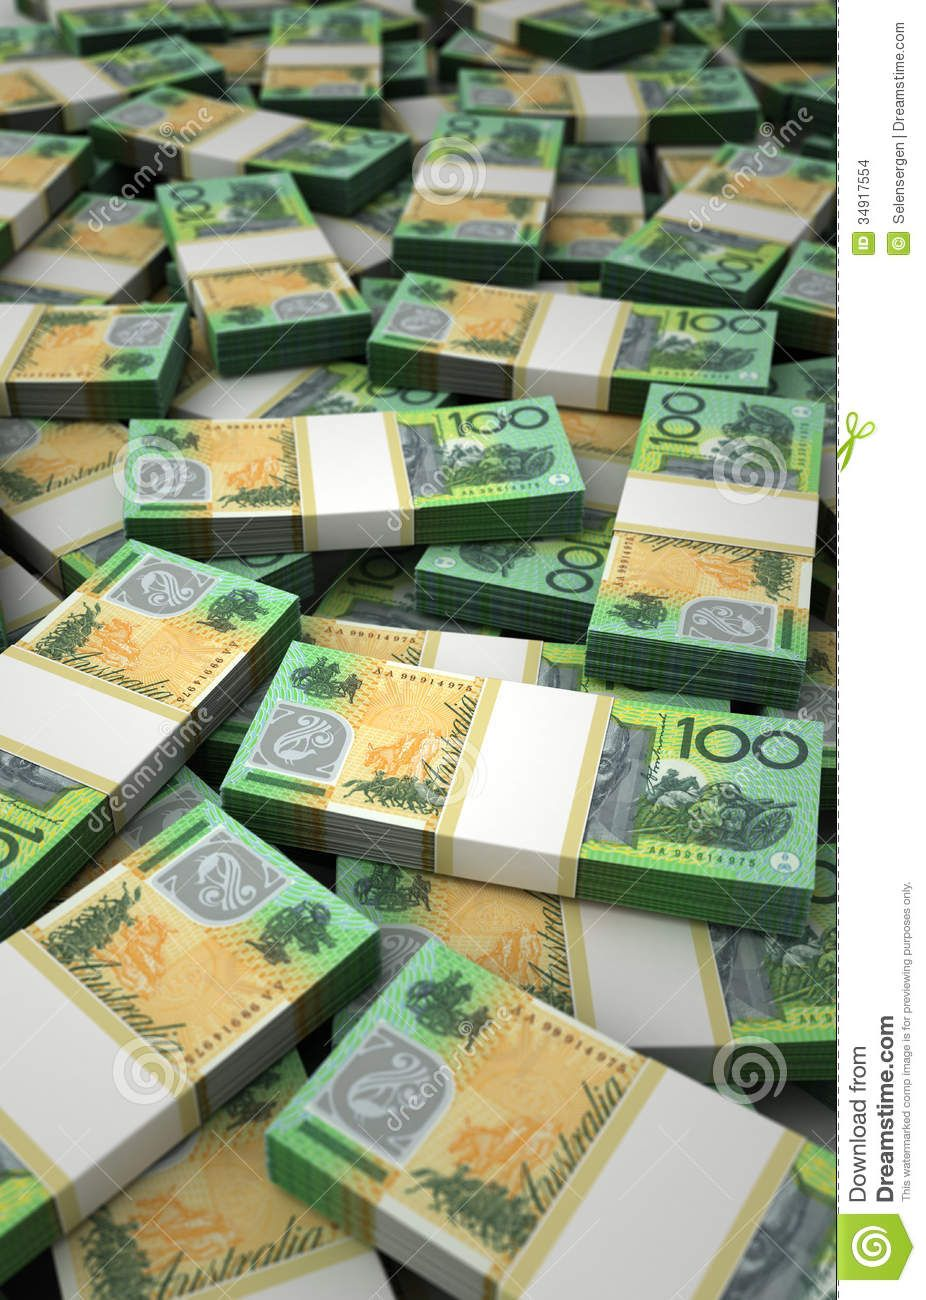 The money is here and there is plenty of it$$$$$$$$$